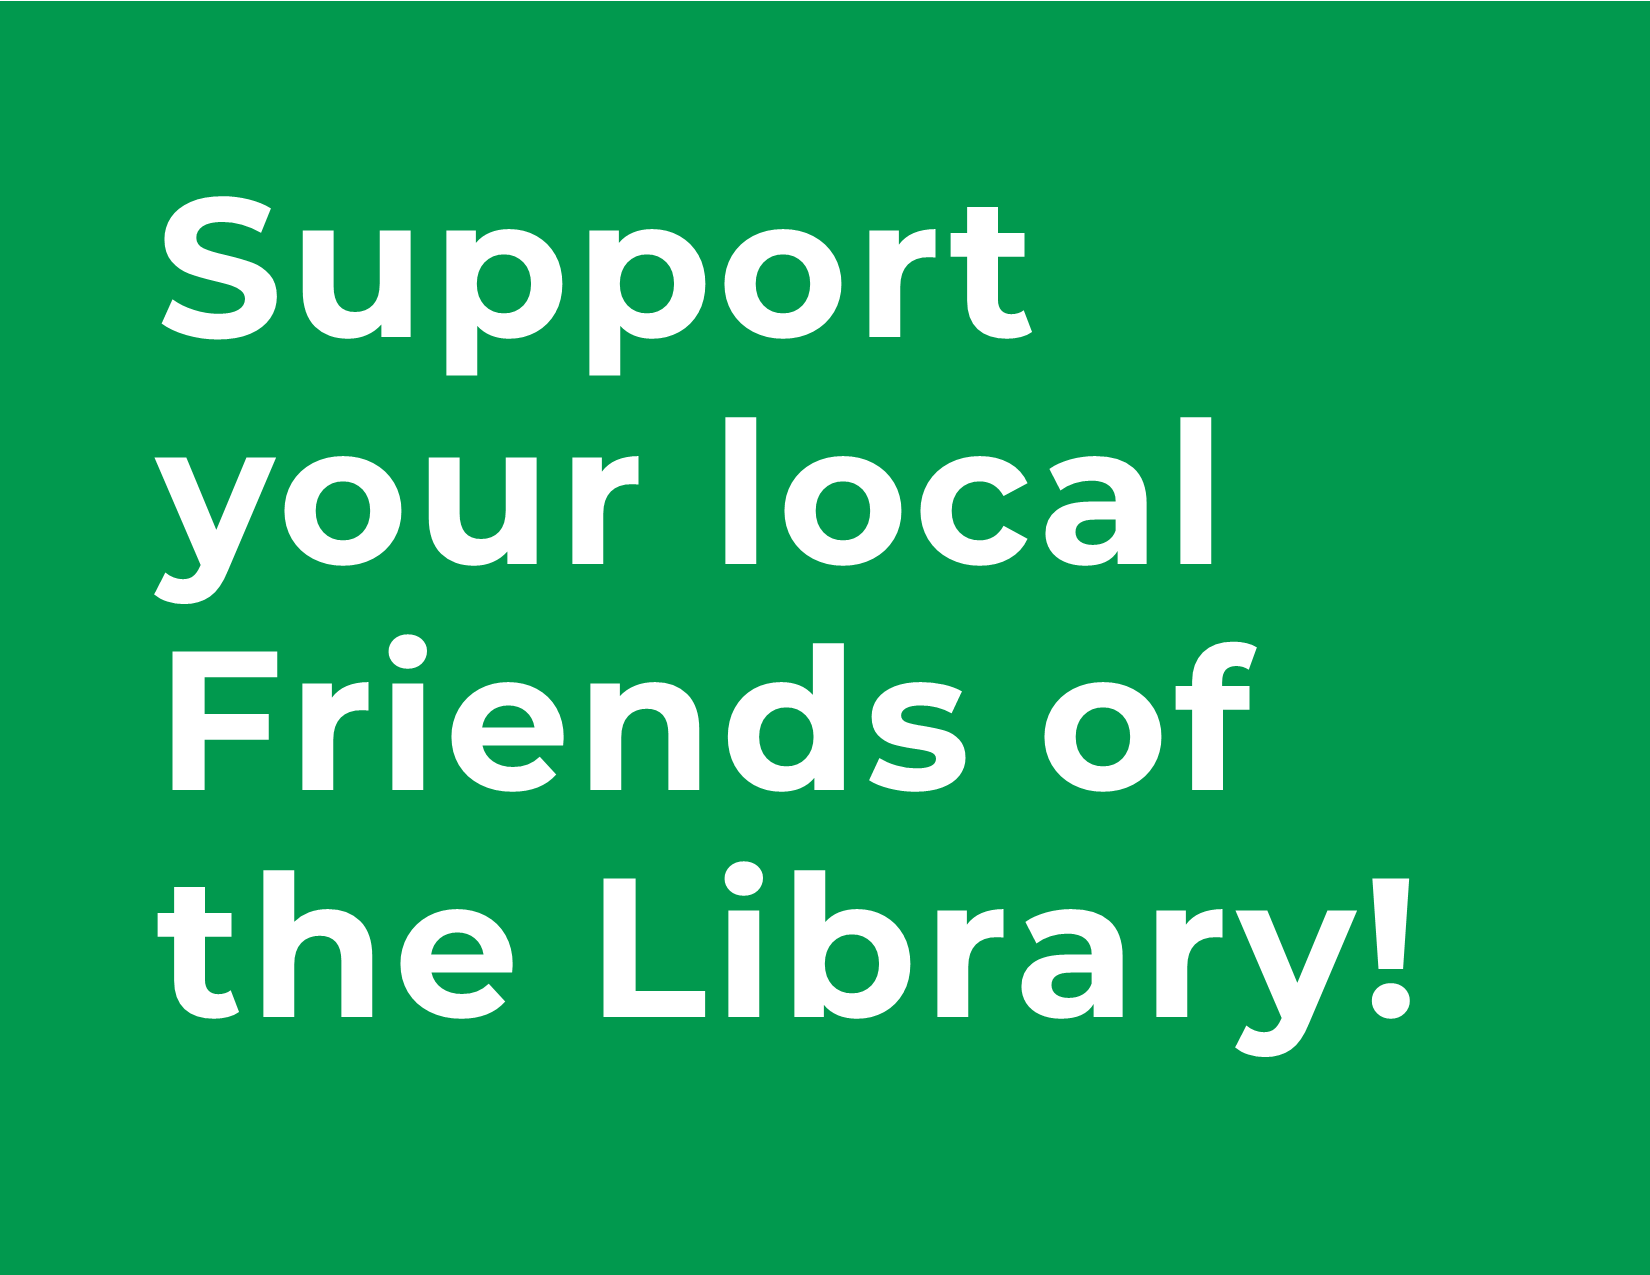 Support your local Friends of the Library!